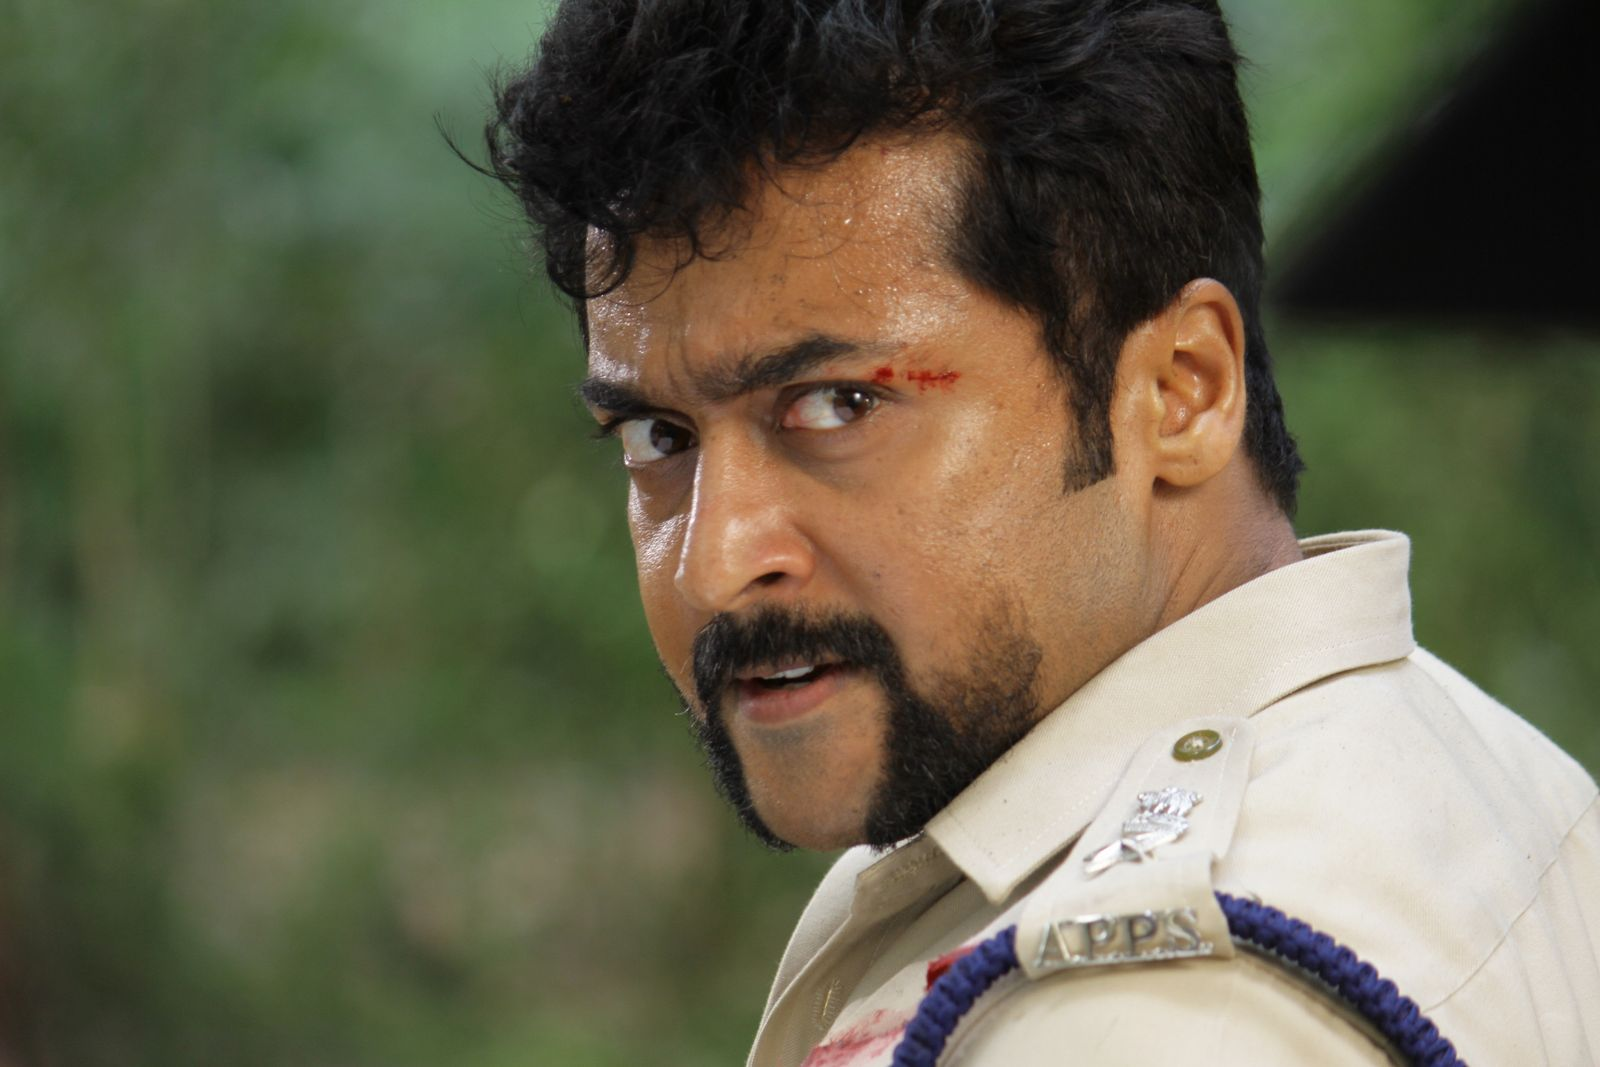 Suriya photos from Singam 3 movie-HQ-Photo-4